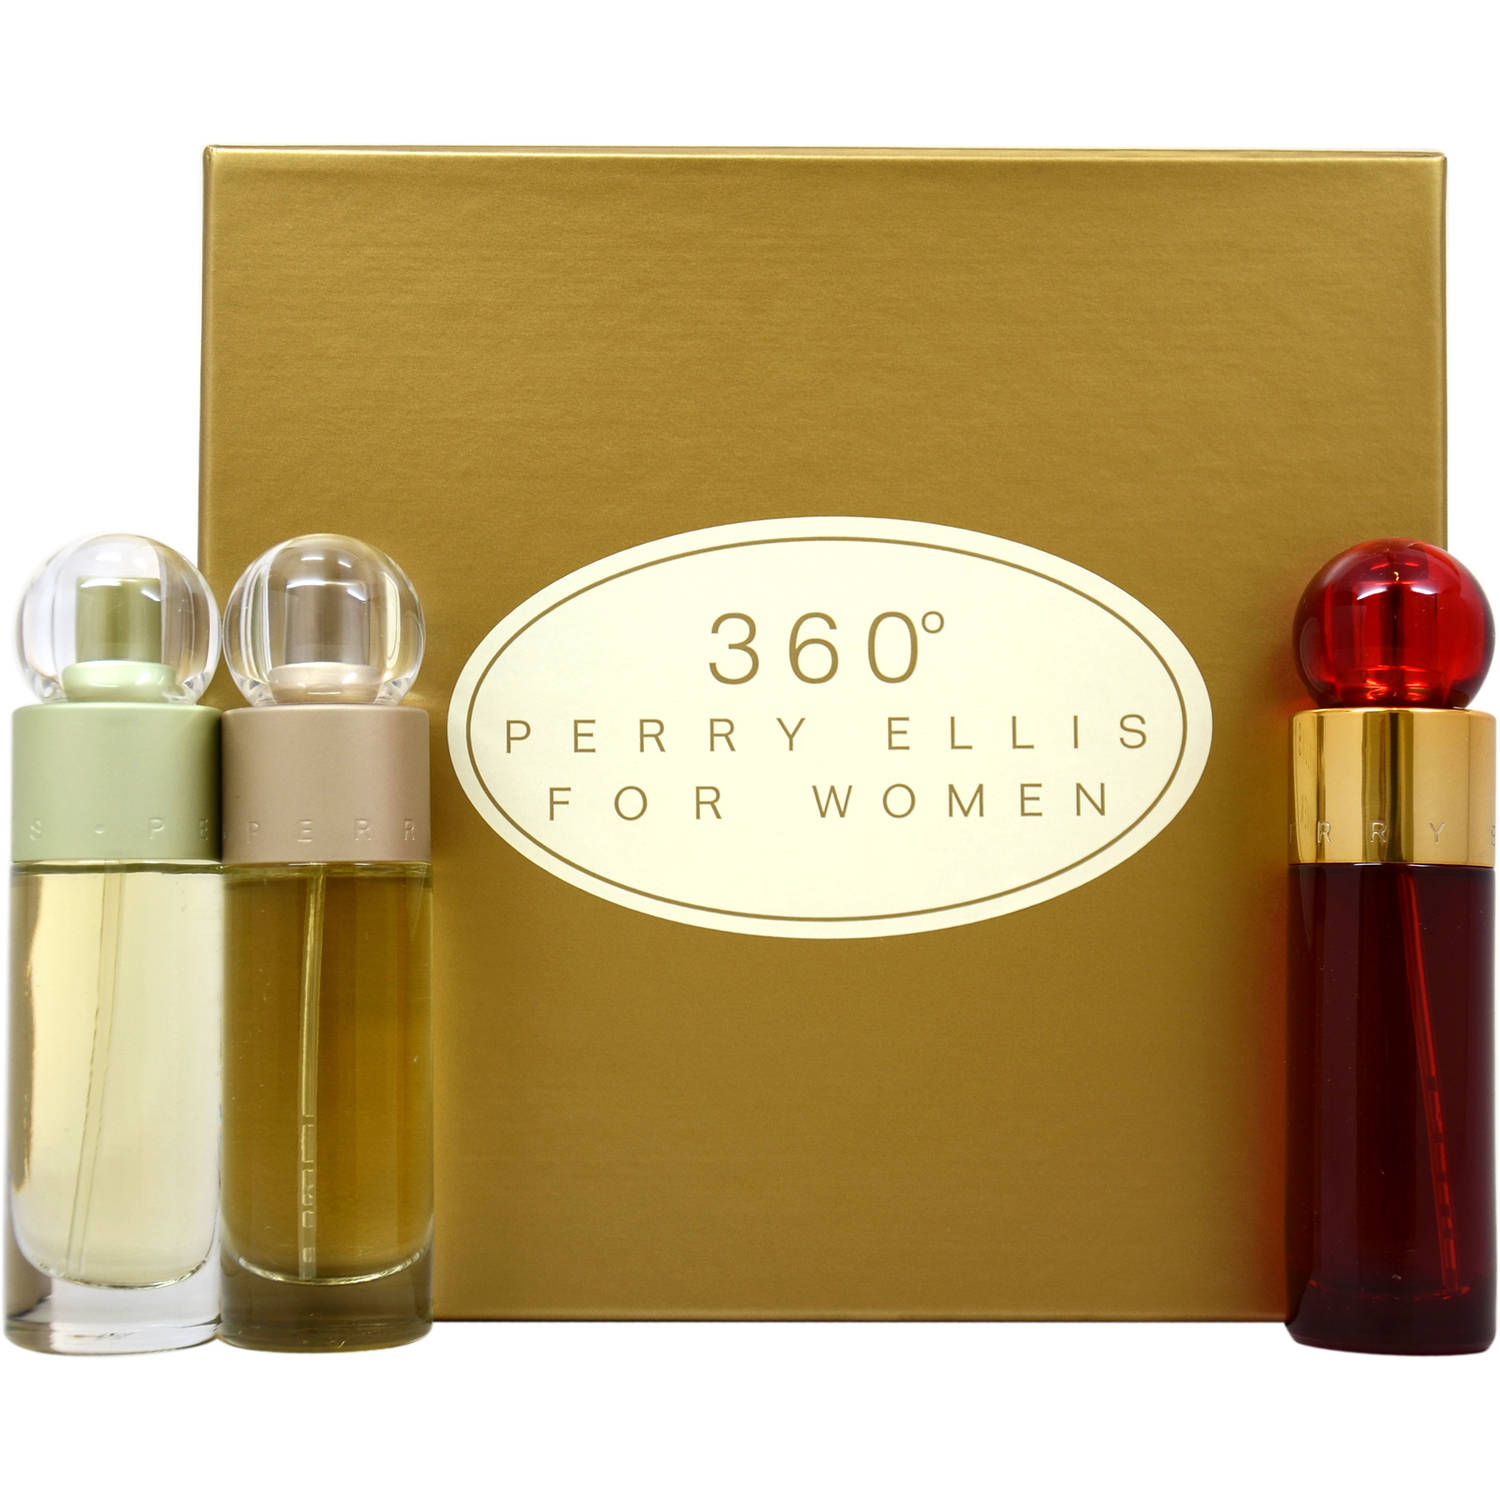 Perry Ellis 360 for Women Gift Set, 3 pc